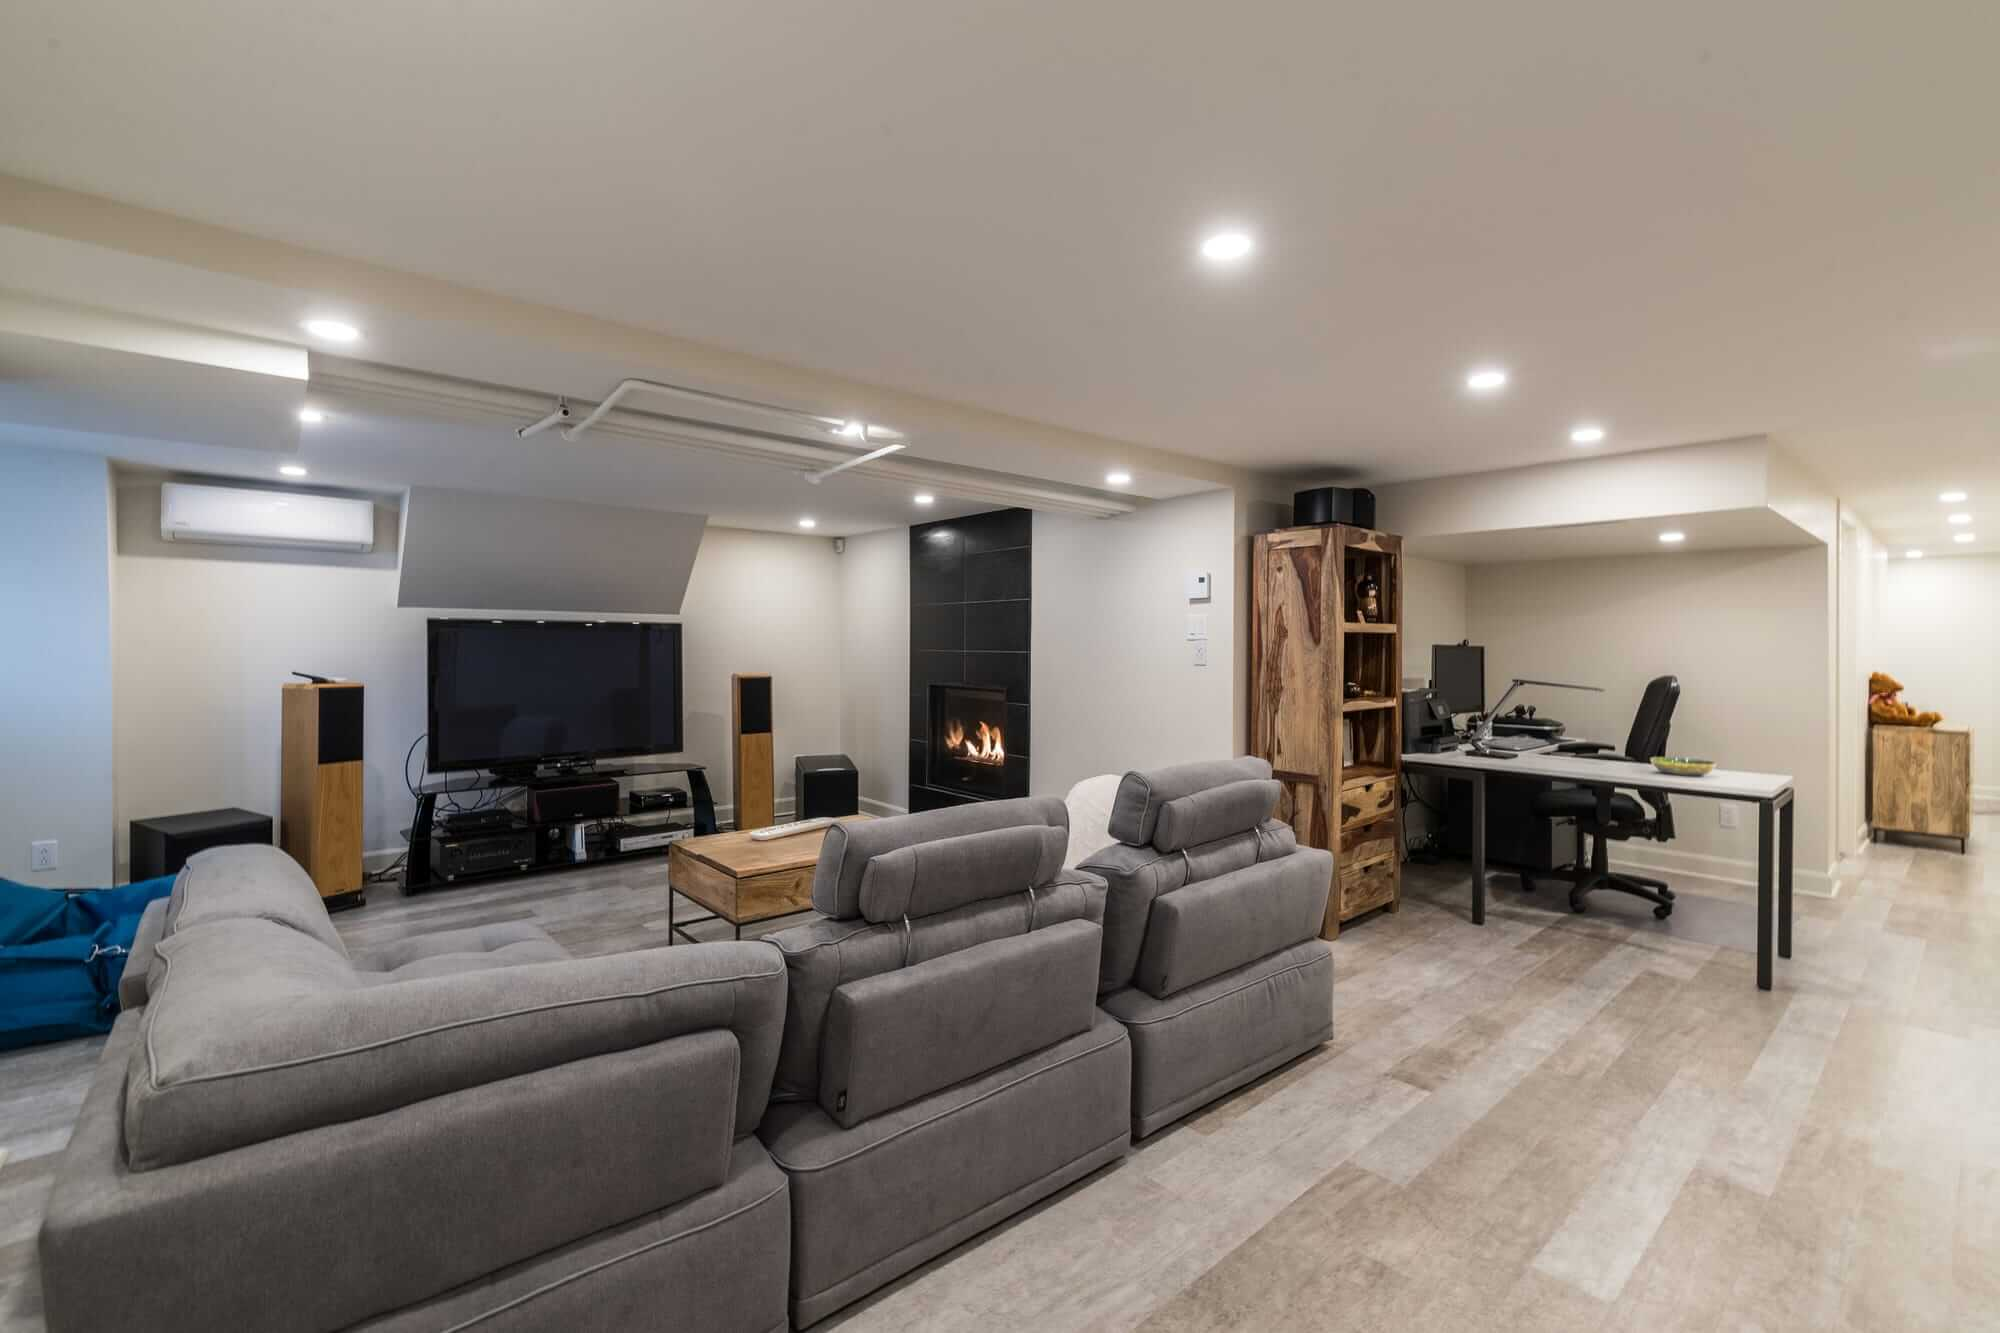 View of a family room after a basement renovation